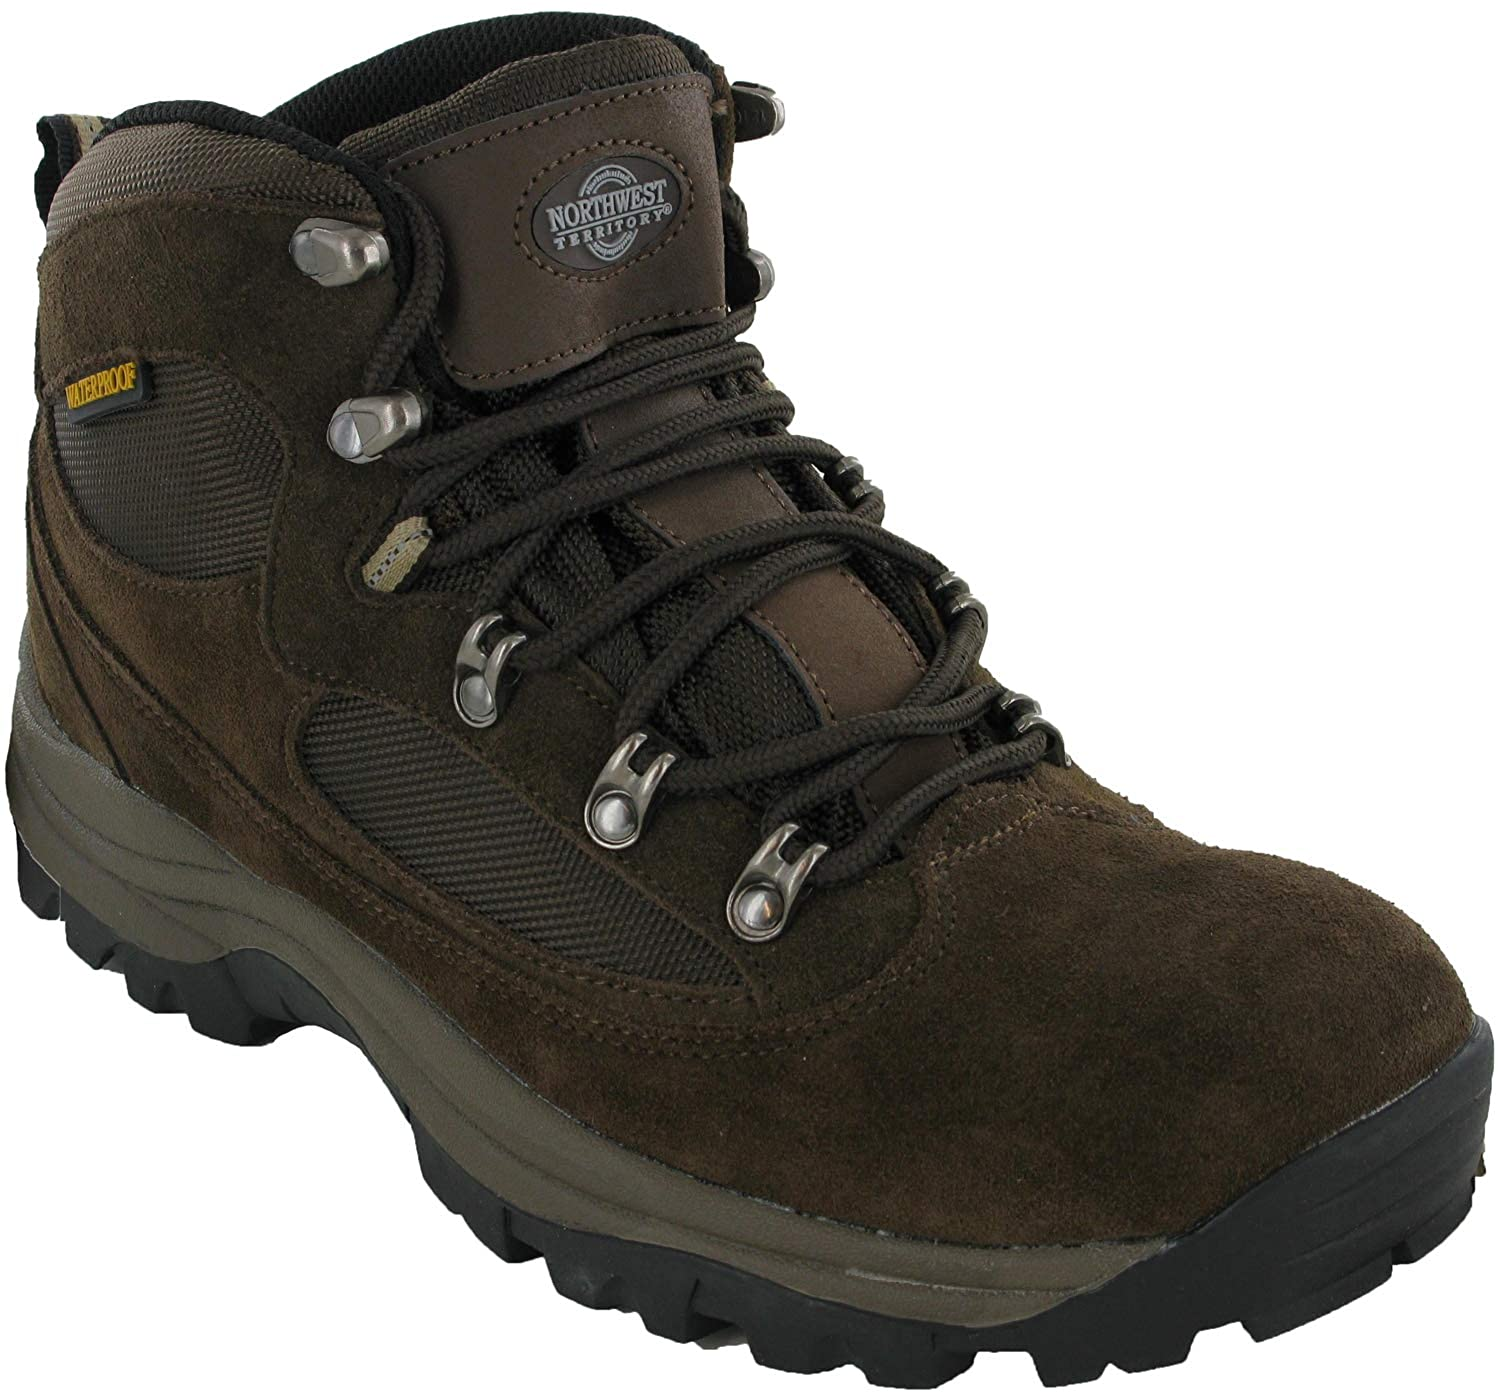 8536657bcb7 Northwest Waterproof Hiking Boots Walking Mens Kendal Lace Up Outdoor Shoes